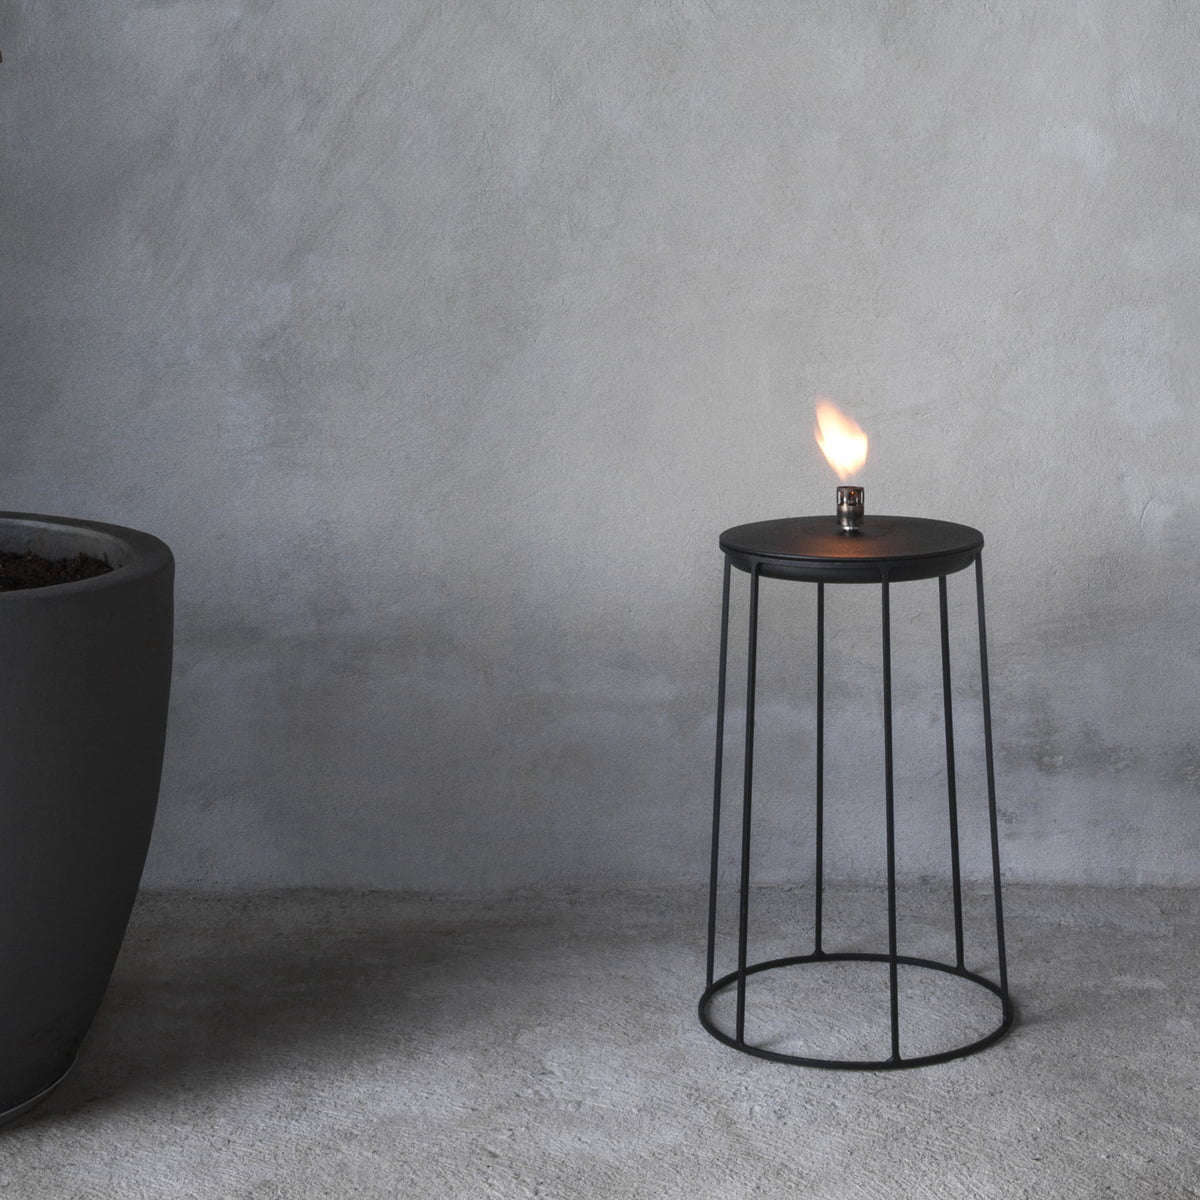 Inspired by a visit to a Japanese garden in LA, the powder-coated steel Wire Disc Oil Lamp by Norm Architects is $89.90 from YLiving.